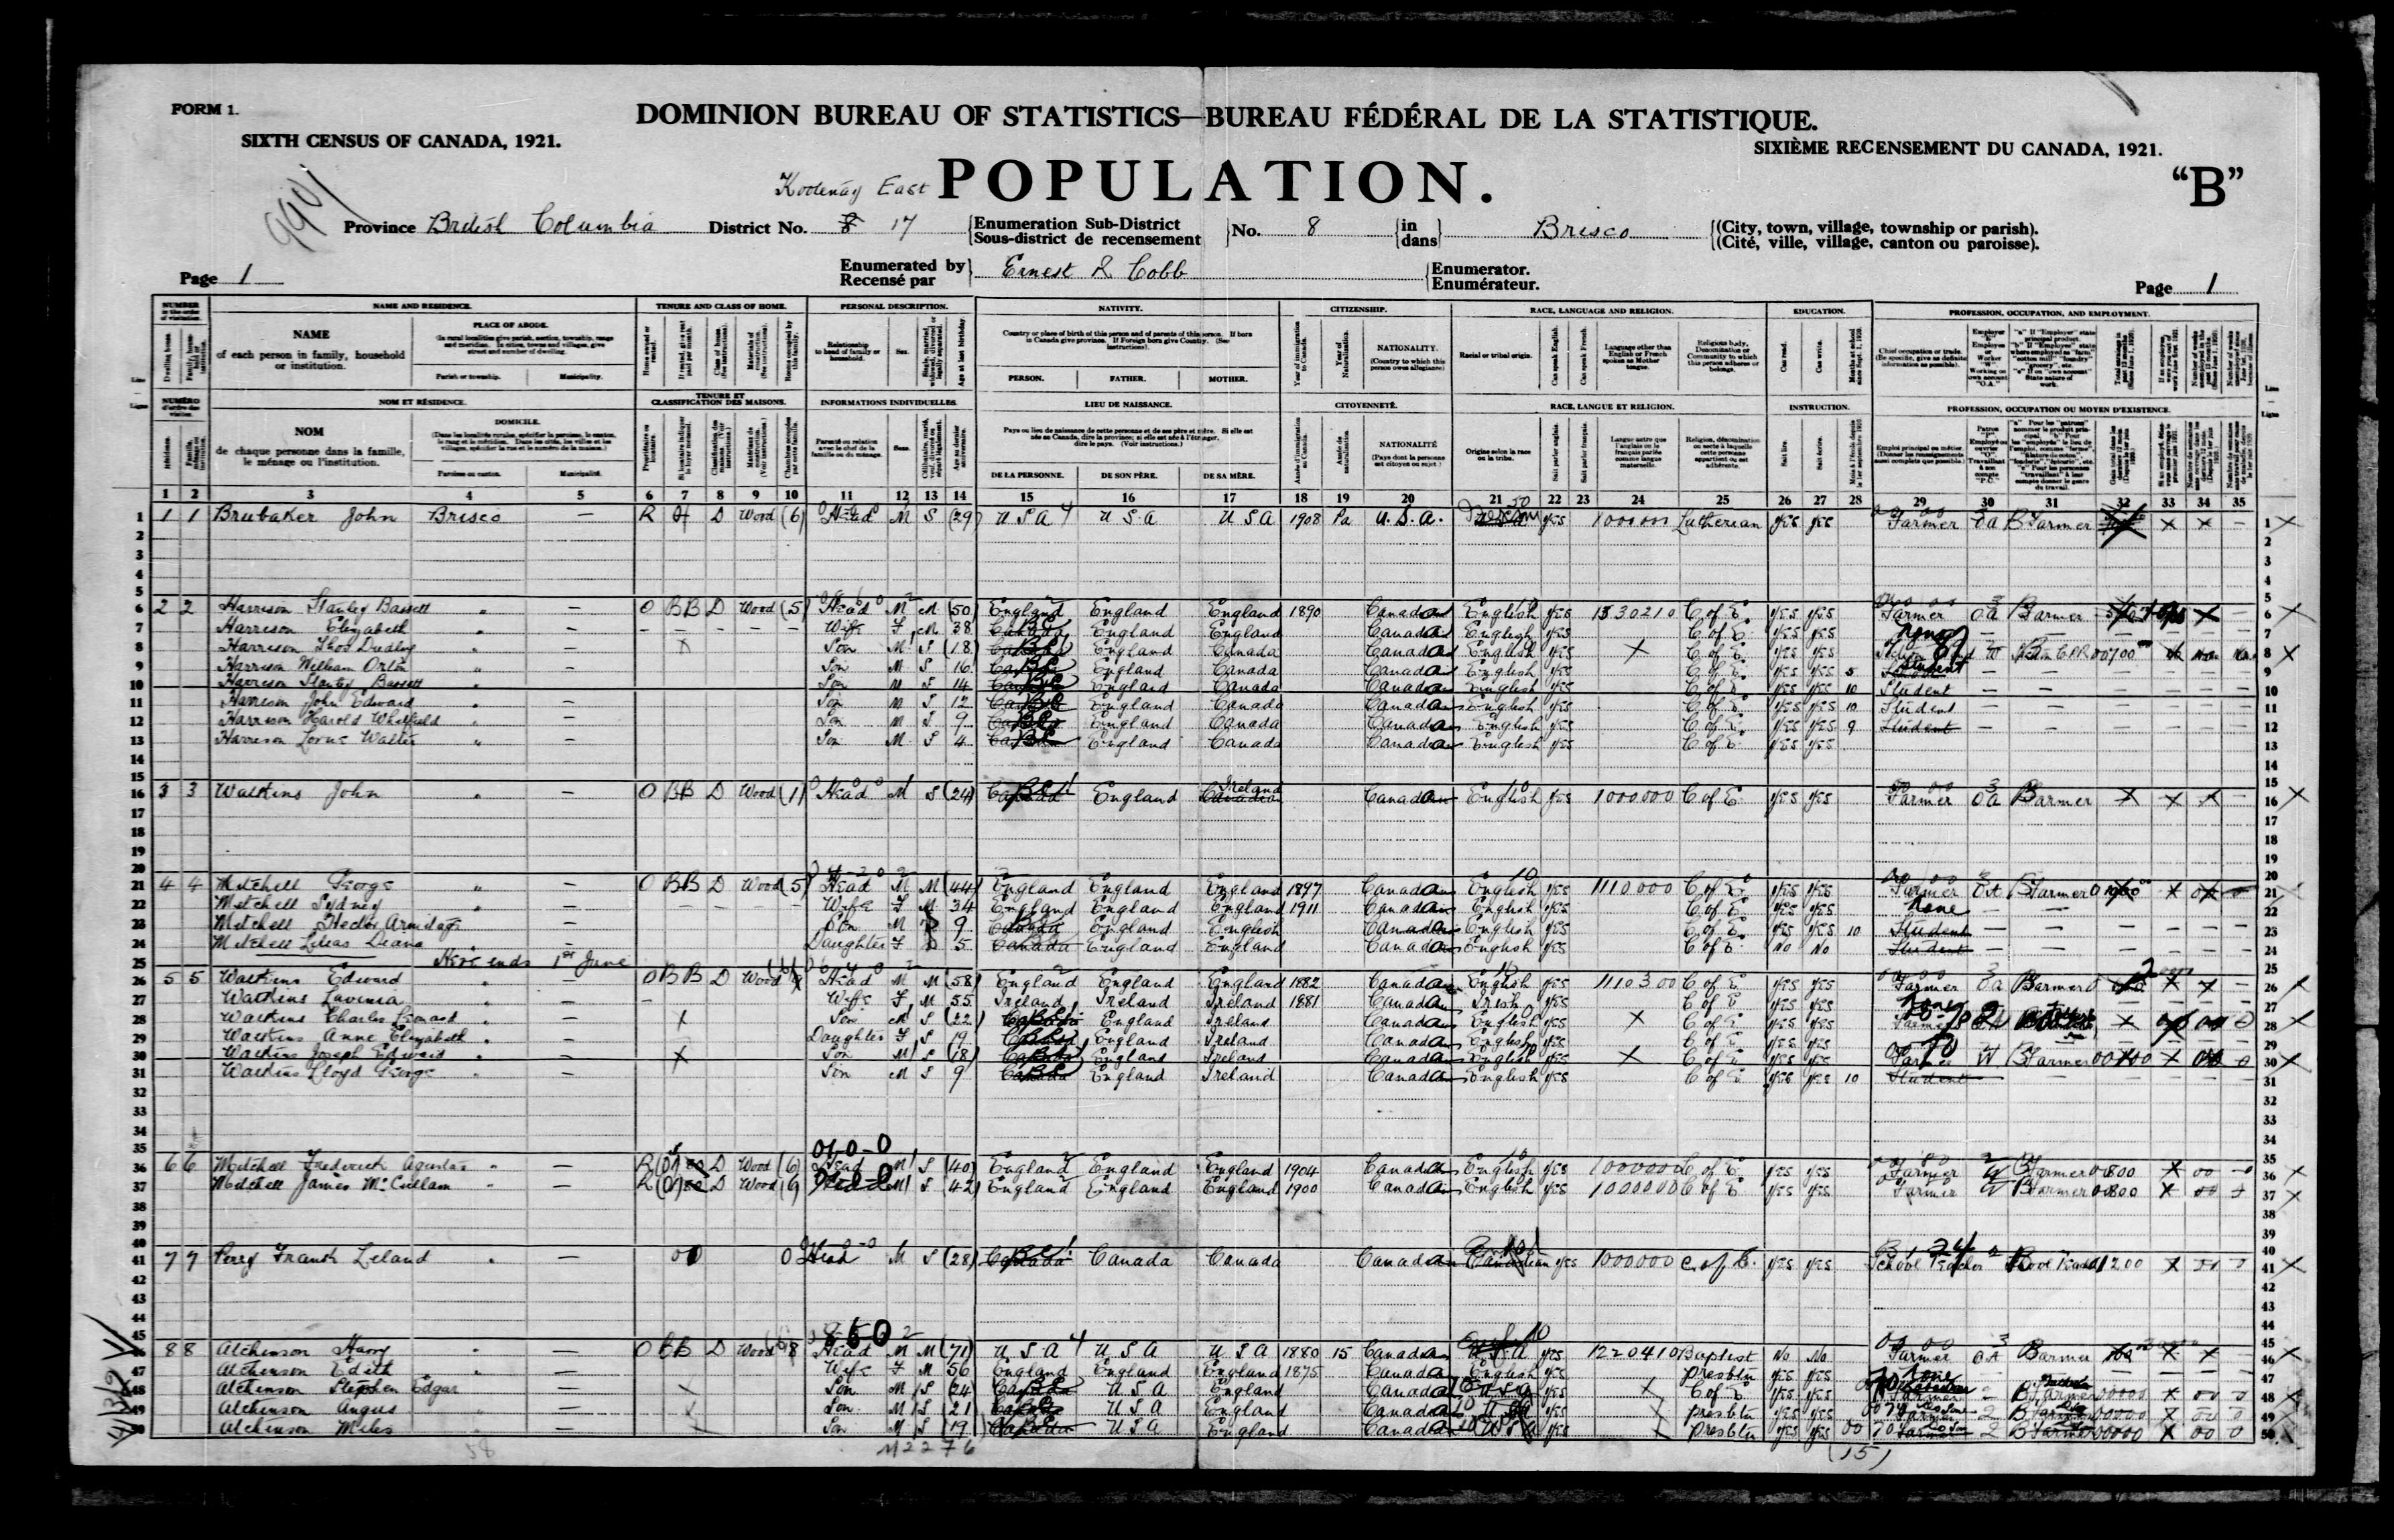 Digitized page of Census of Canada, 1921, Page number 1, for Lloyd George Watkins